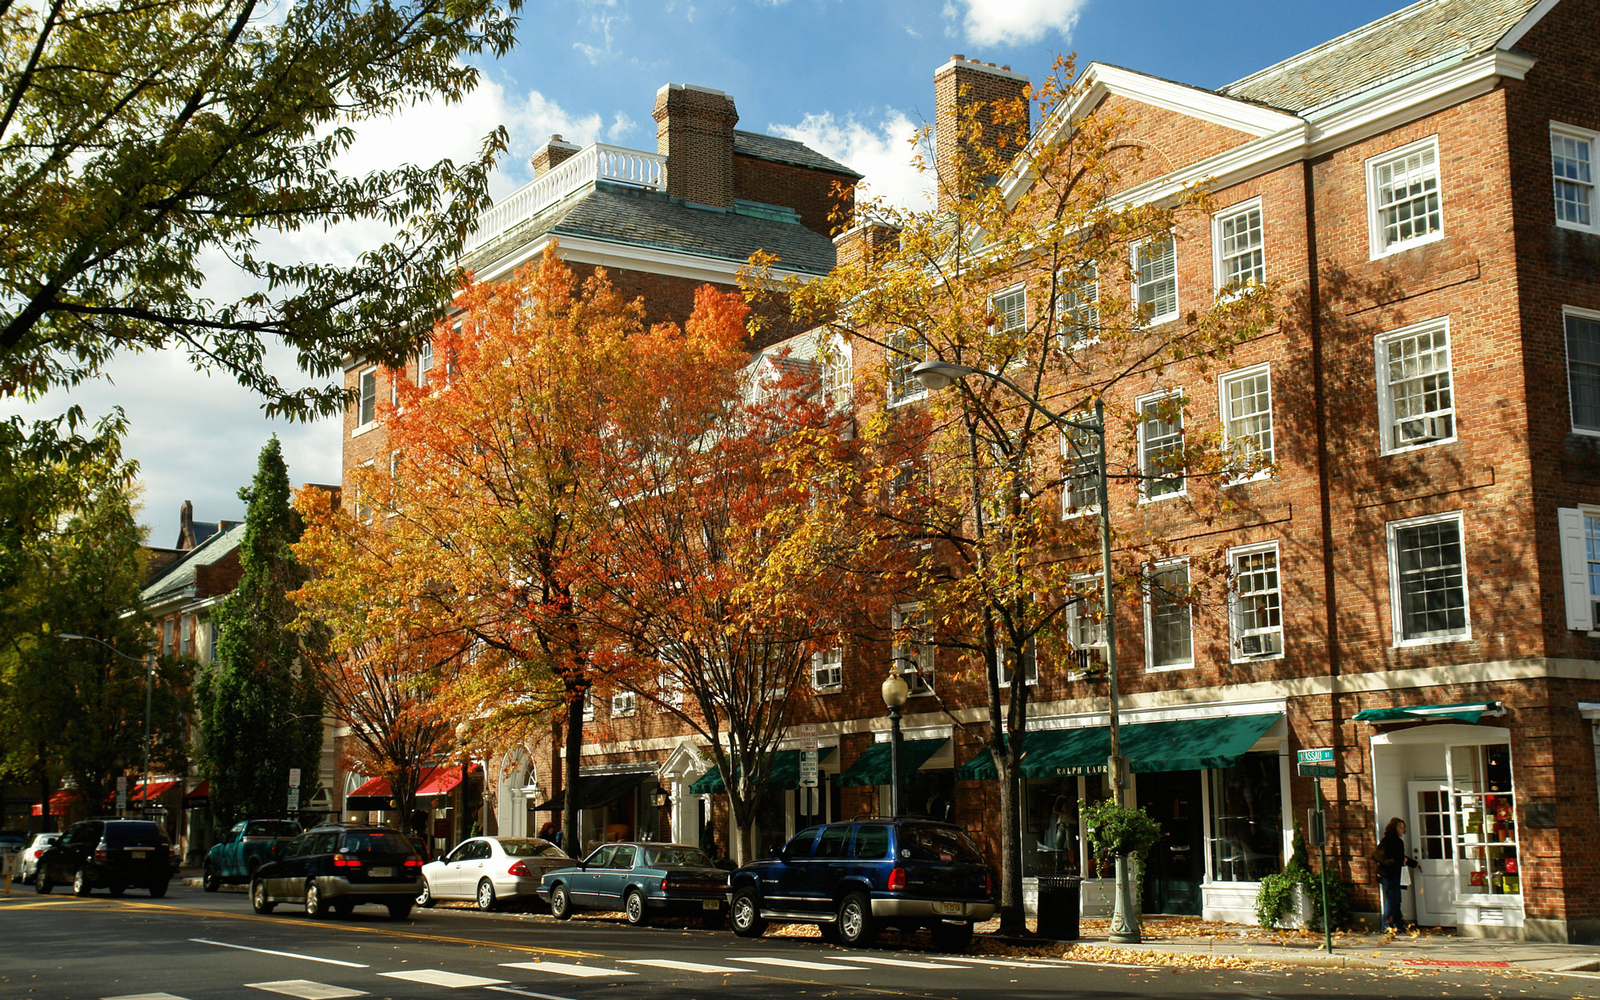 downtown shops in fall time in Princeton, NJ